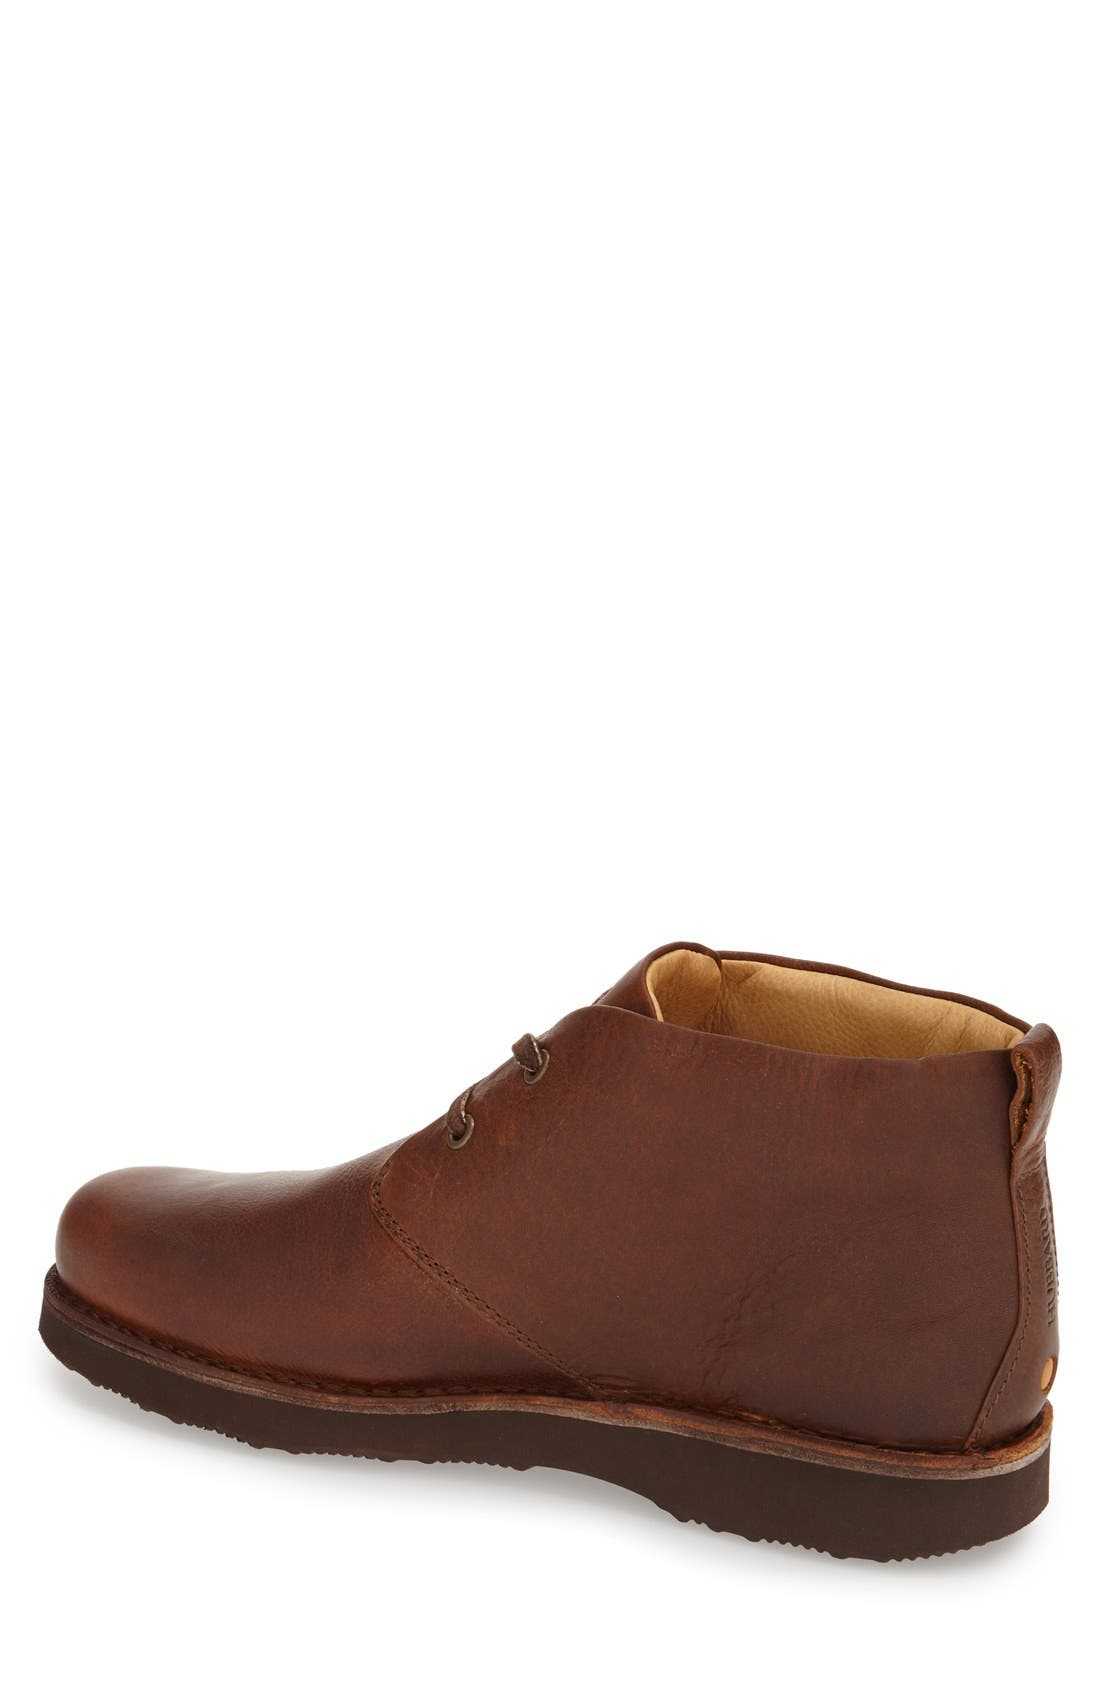 'Boot-Up' Chukka Boot,                             Alternate thumbnail 2, color,                             Saddle Tan Leather